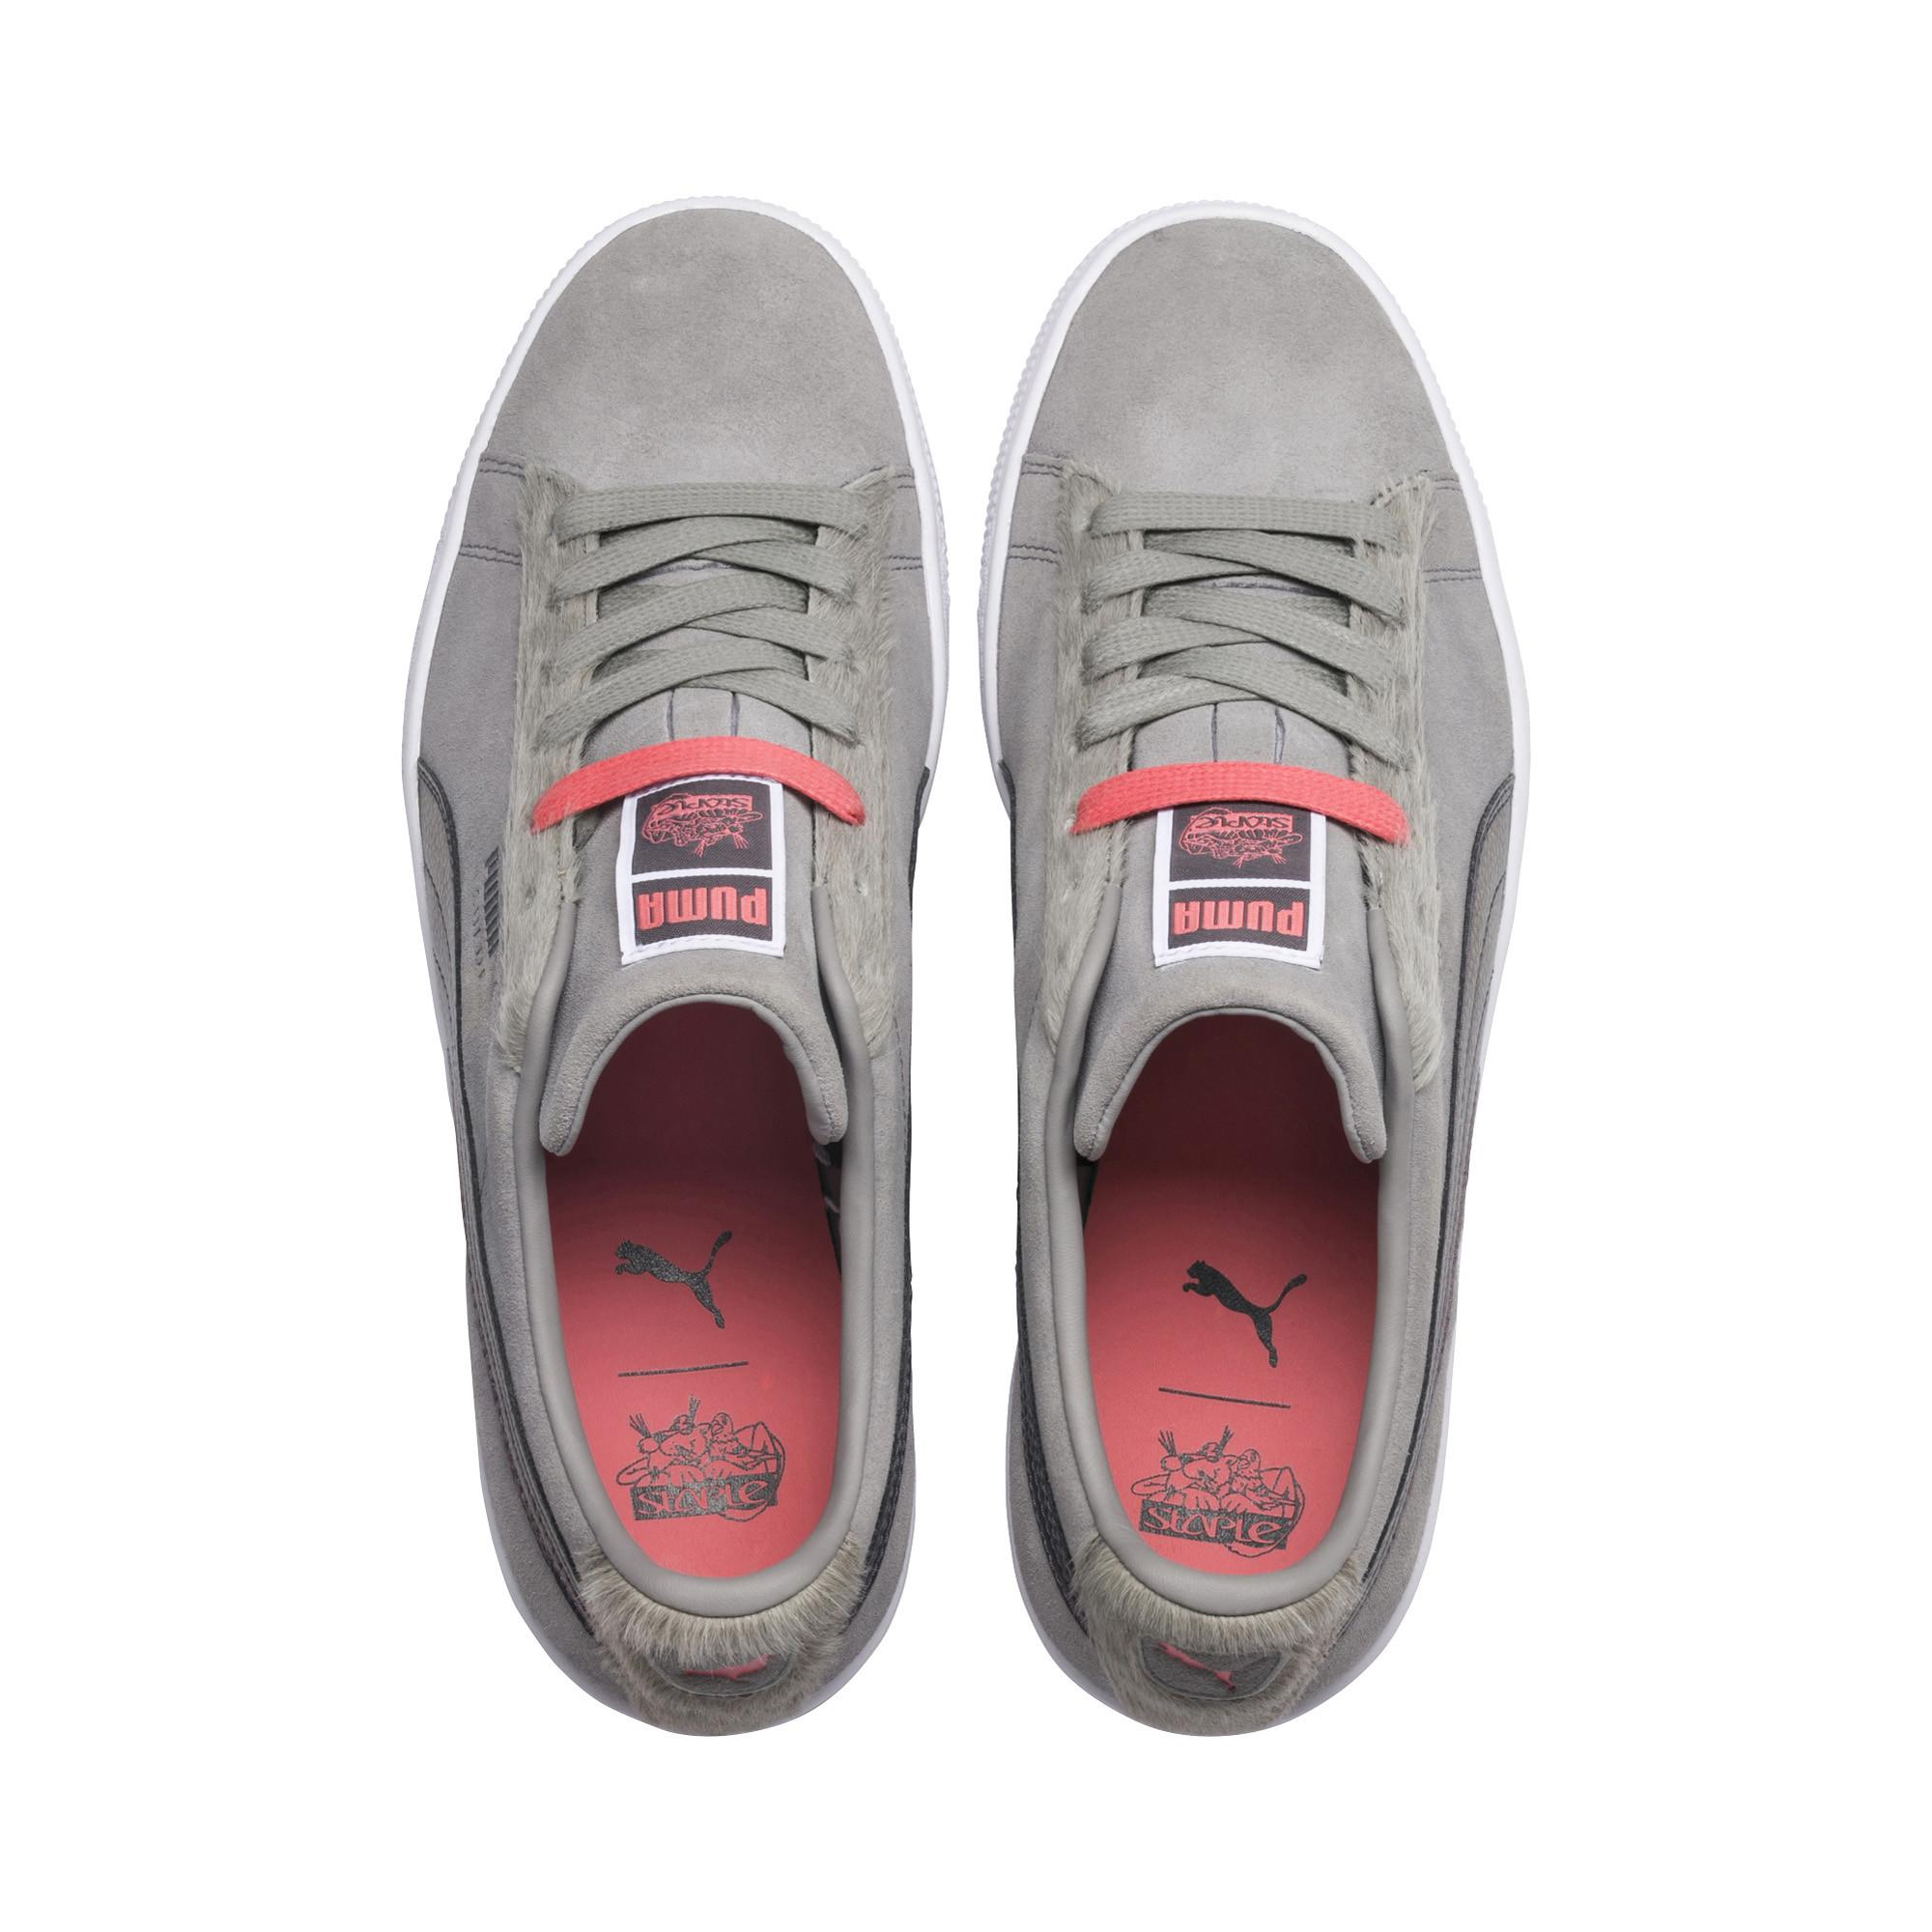 64fd44031abc Lyst - PUMA X Staple Pigeon Suede Classic Sneakers in Gray for Men